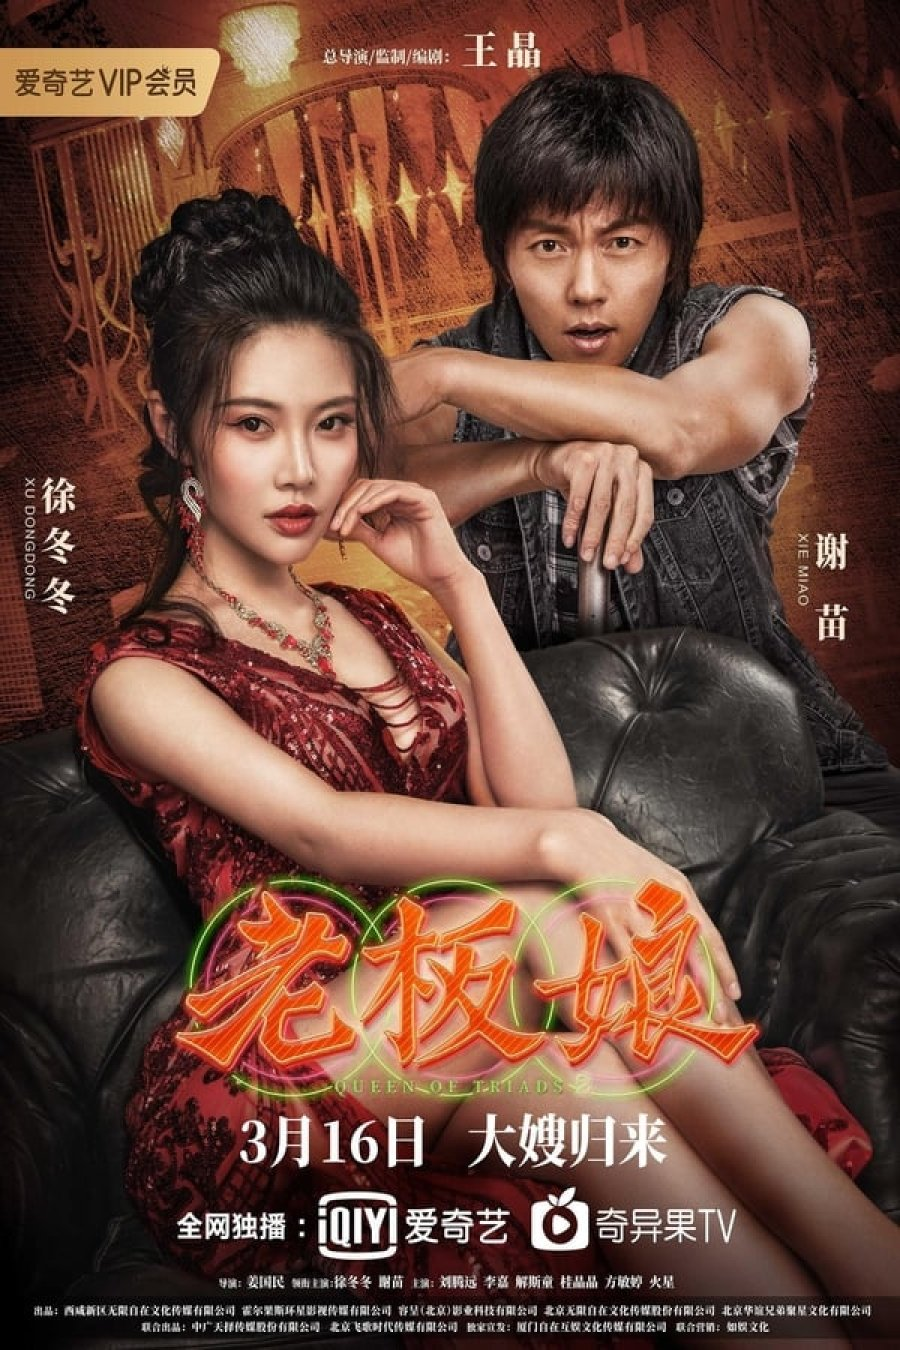 Queen of Triads 2 2021 Chinese Full Movie 720p HDRip 700MB Download